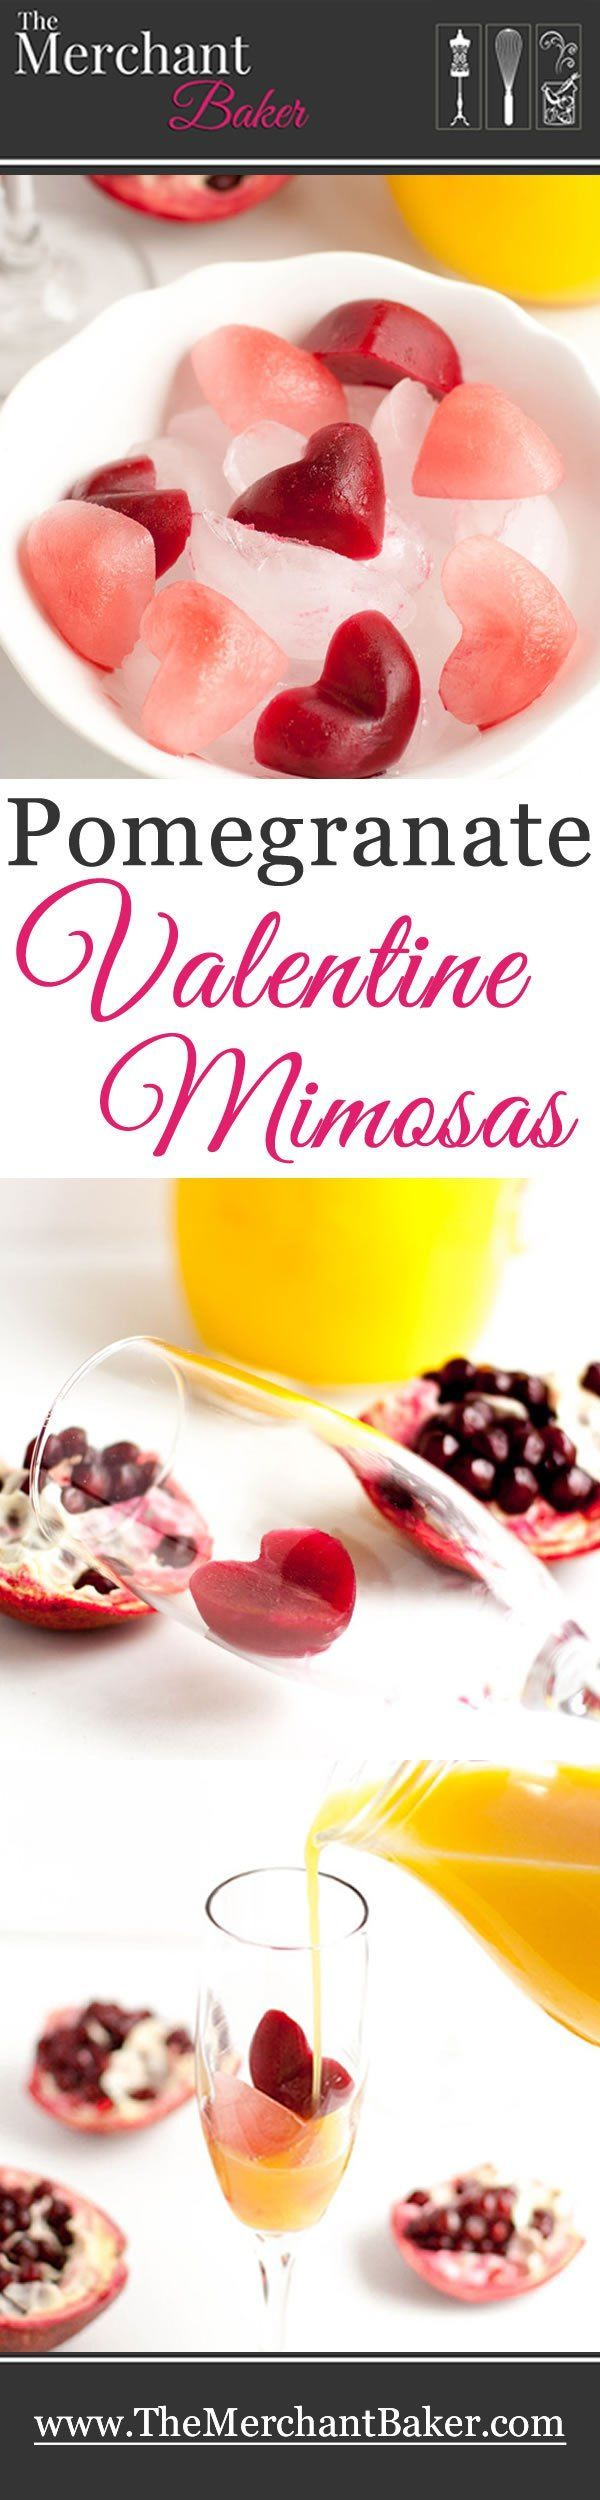 Classic mimosas get a festive valentine twist with pomegranate juice hearts! Fresh orange juice and sparkling wine complete this refreshing drink. Go mocktail with seltzer or kid friendly with lemonade!